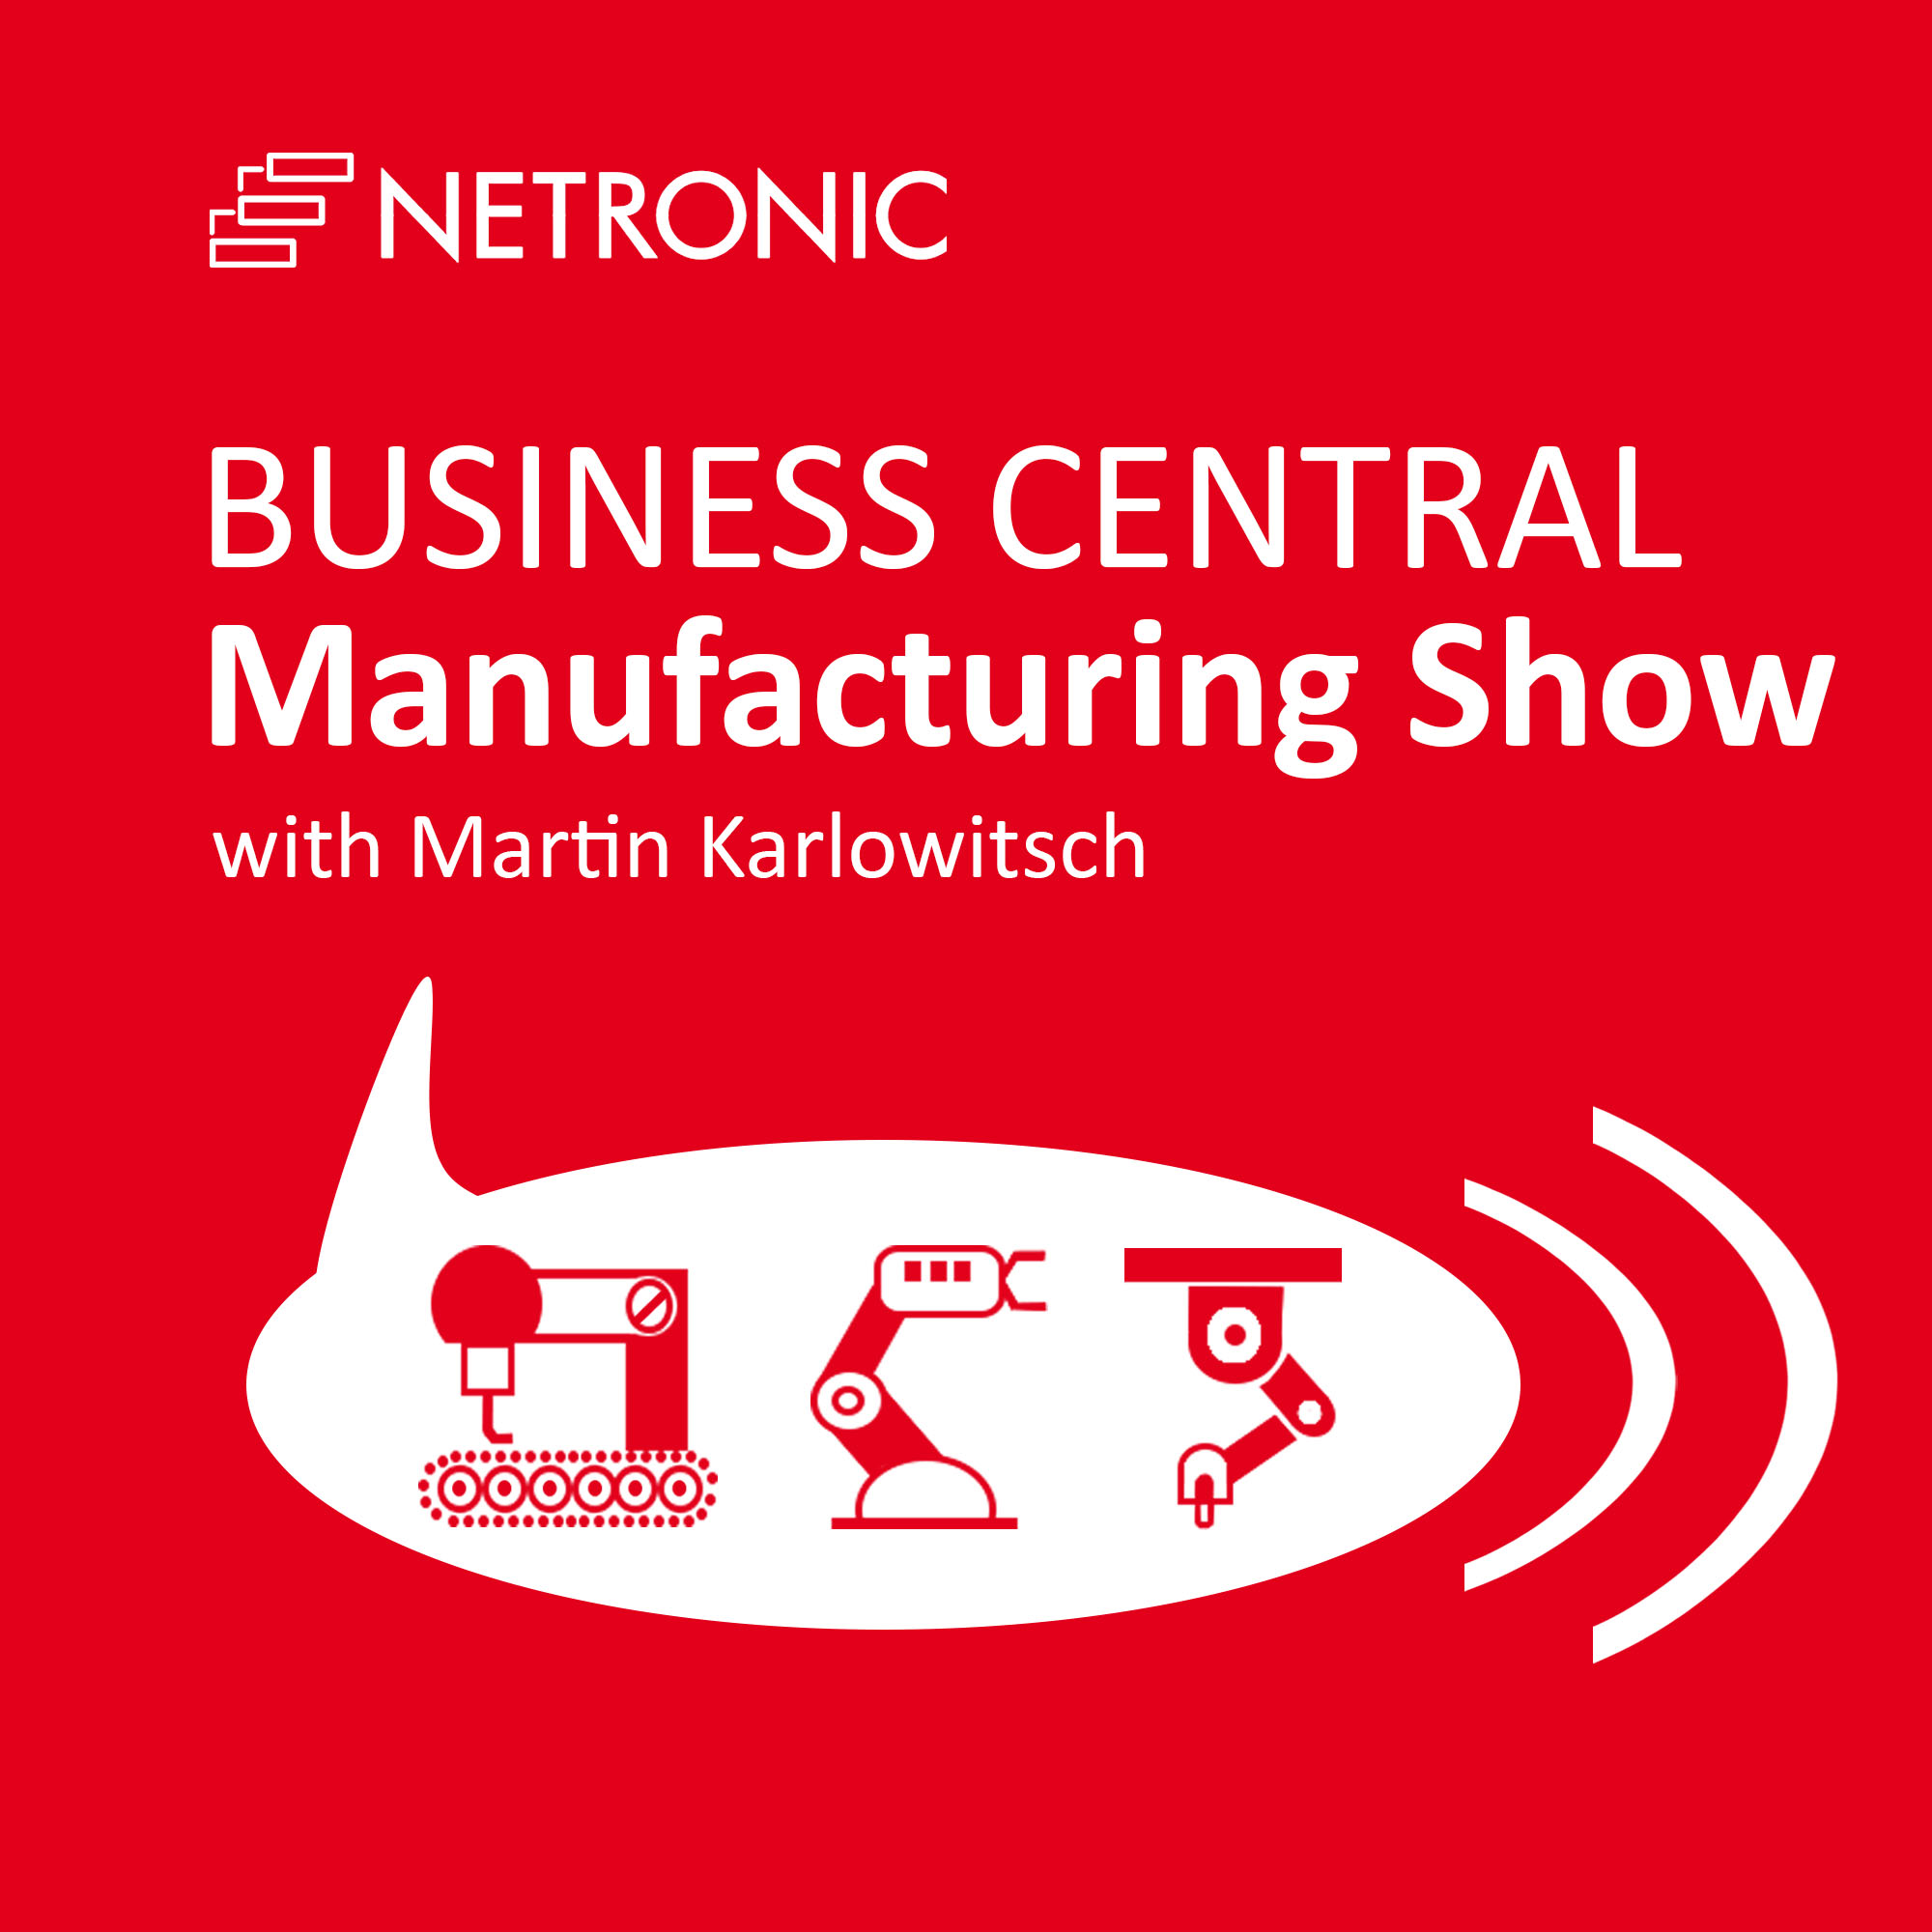 Business Central Manufacturing Show - square